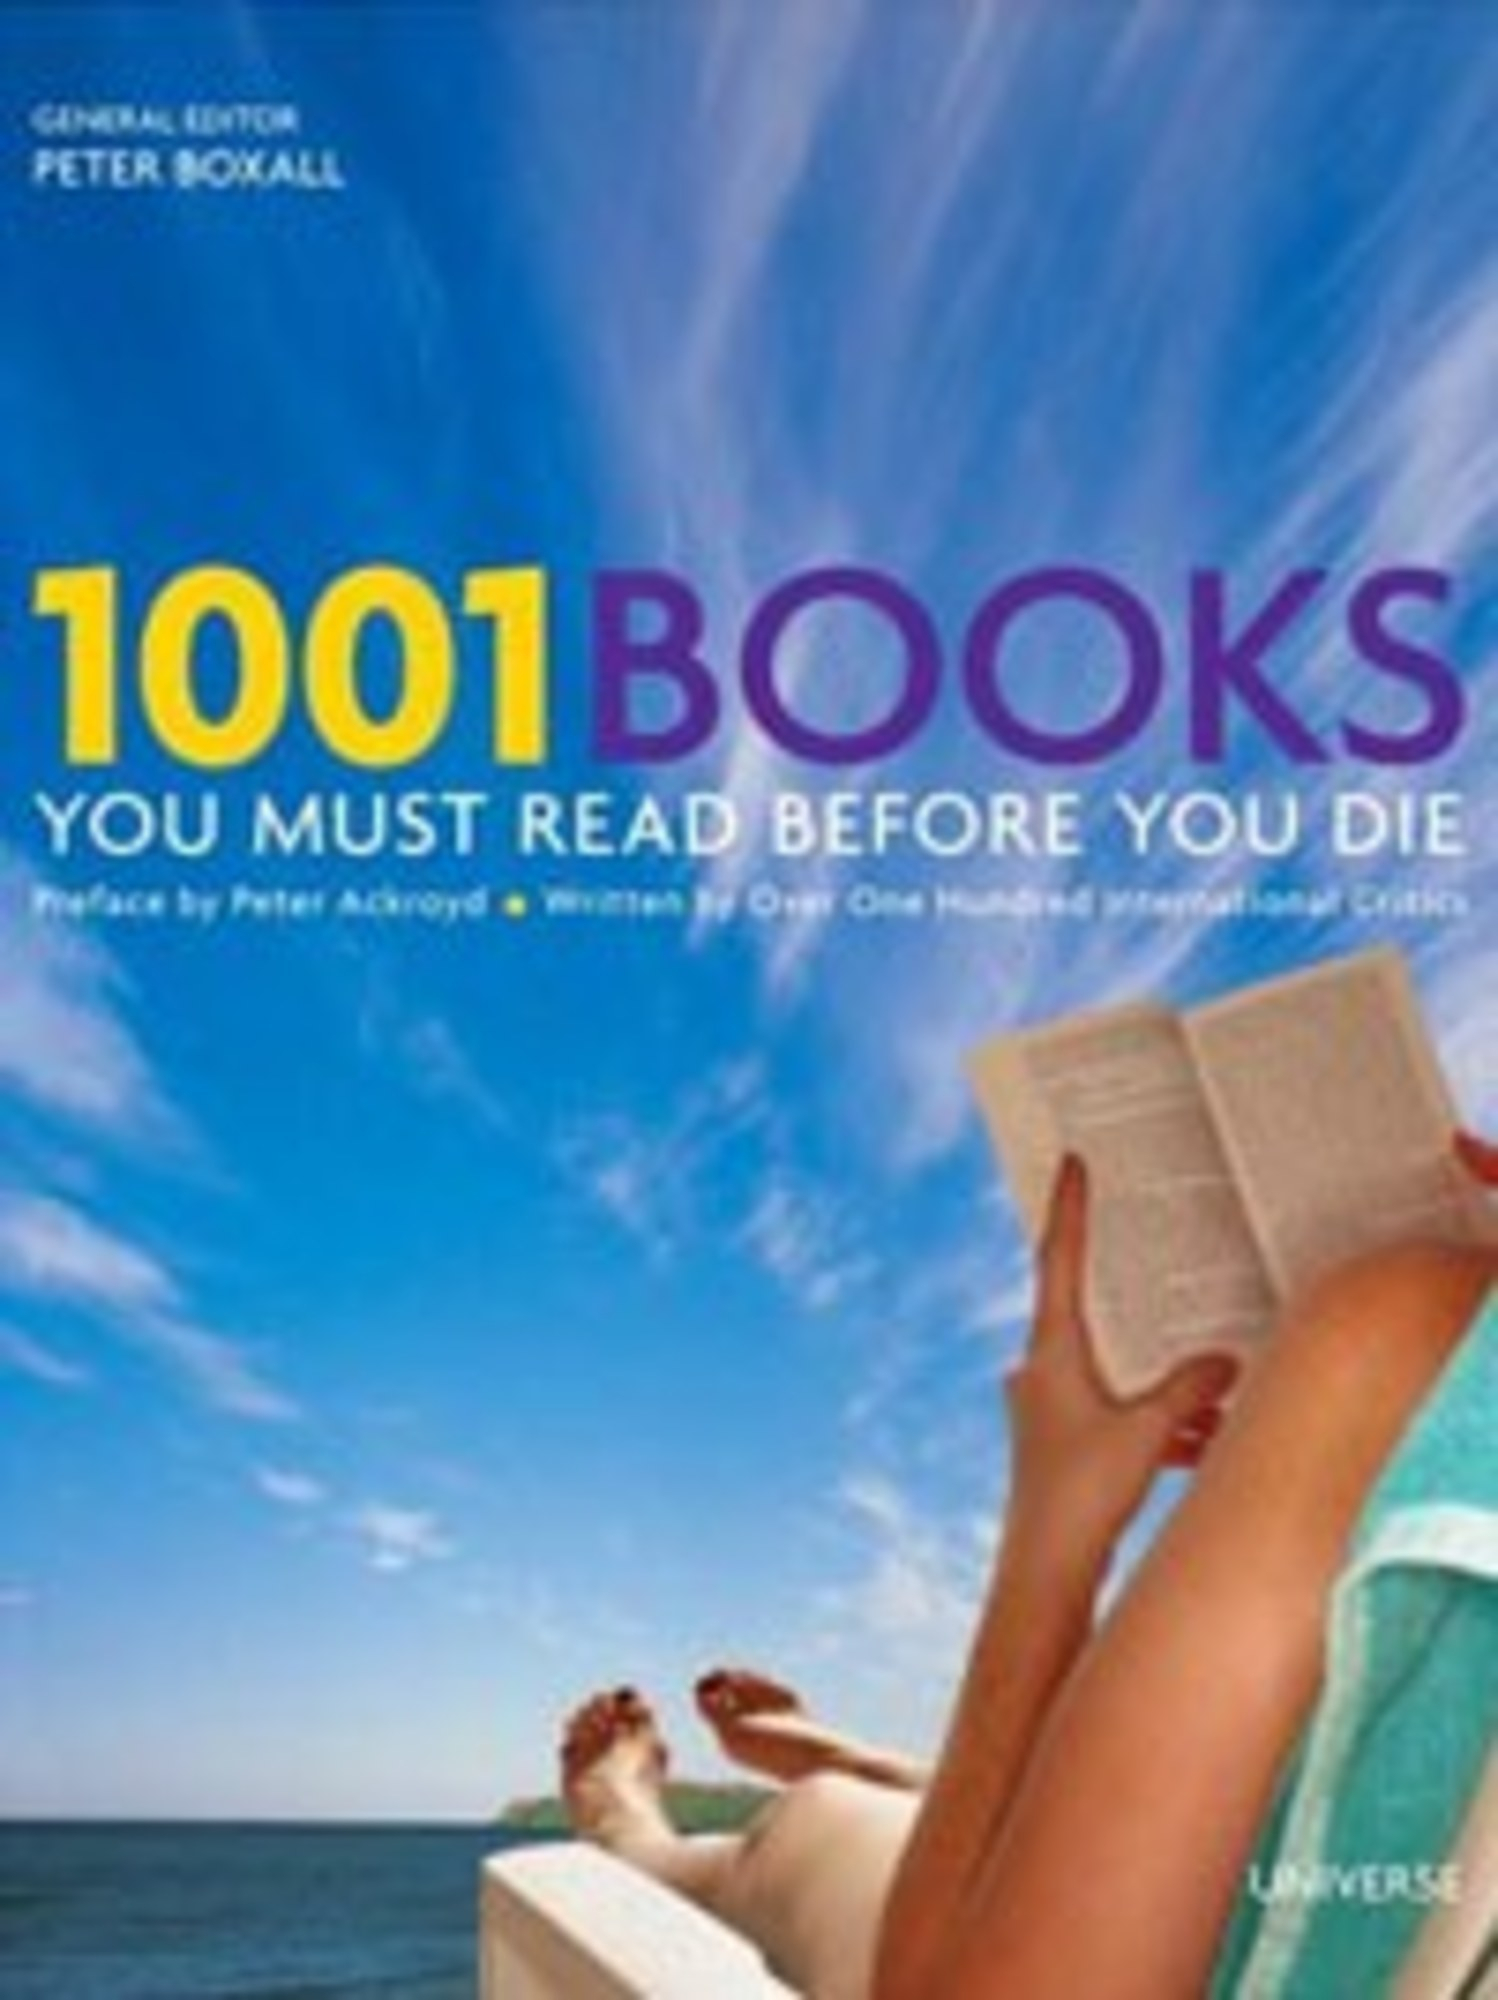 1001 Albums You Must Hear Before You Die Spreadsheet Within 1001 Books You Must Read Before You Diemore Than One Hundred